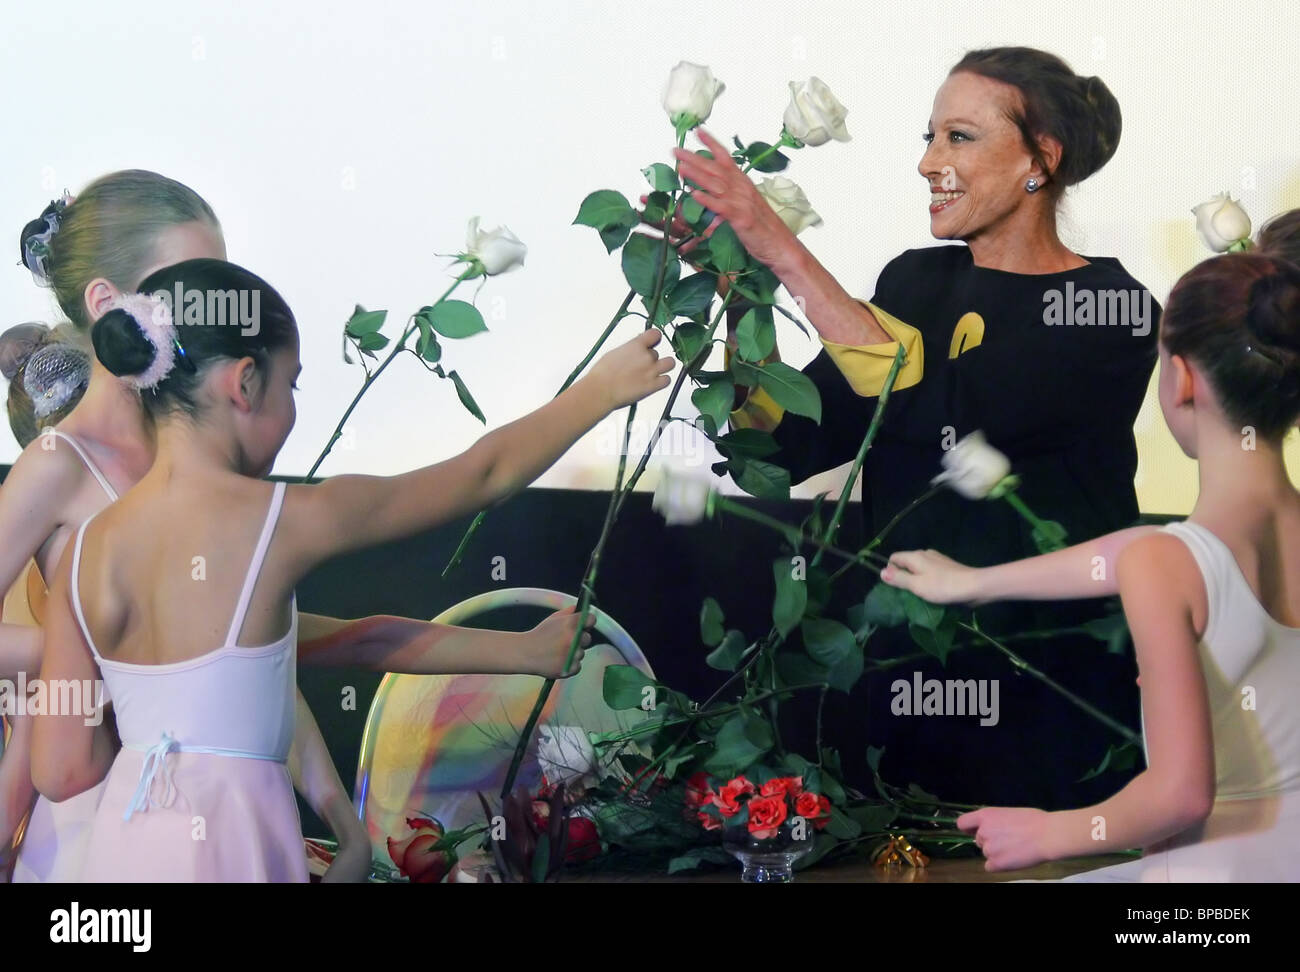 Festival of films featuring Maya Plisetskaya opens in Moscow - Stock Image